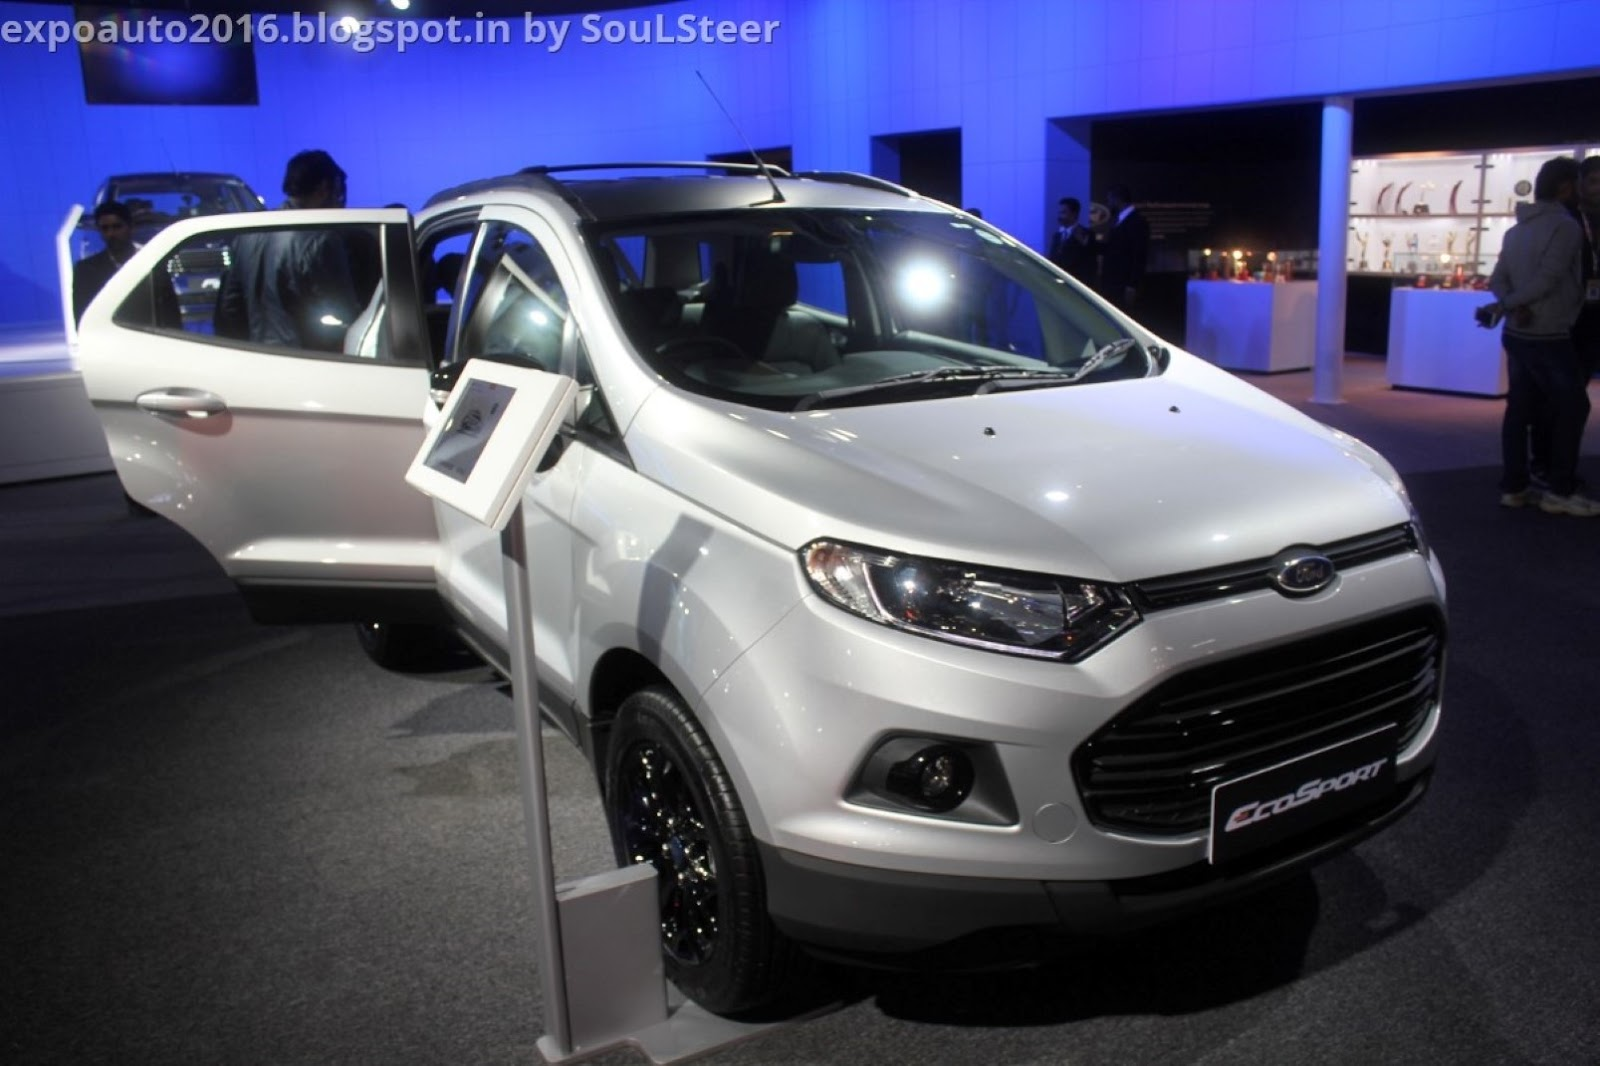 auto expo 2016 by soulsteer ford ecosport mini sport utility vehicle in silver and brown at. Black Bedroom Furniture Sets. Home Design Ideas